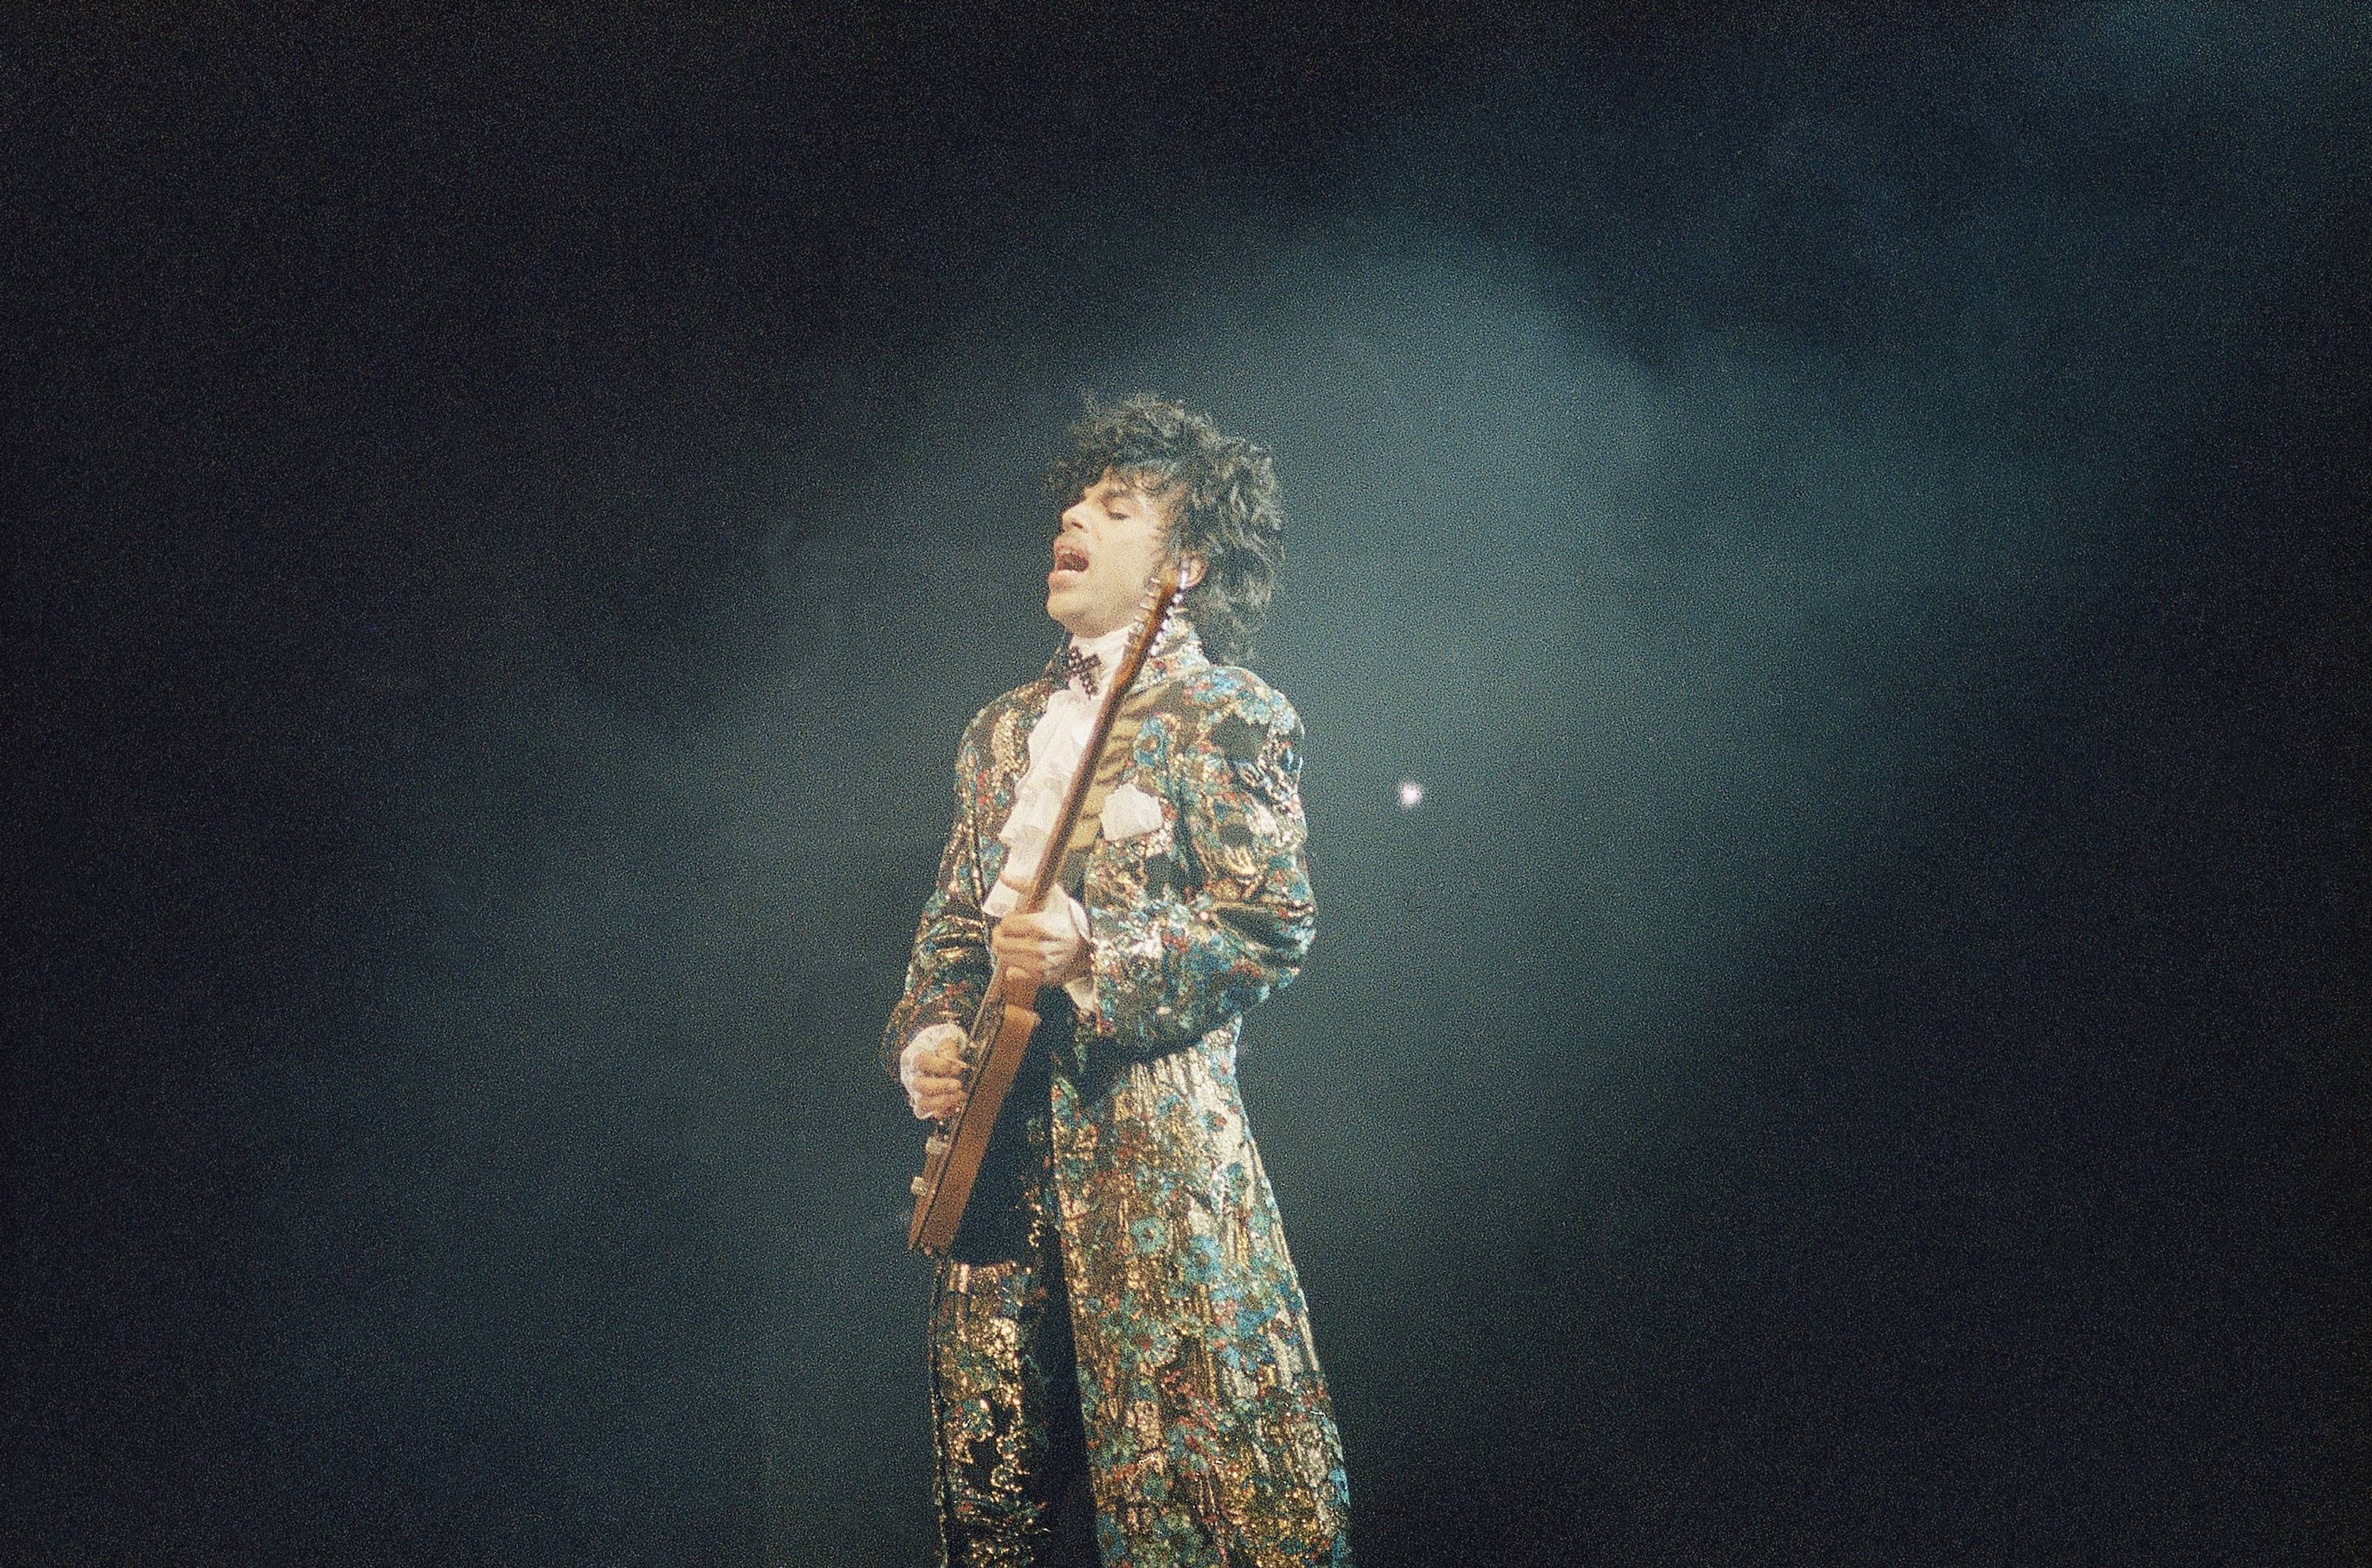 Oscar-winning rock singer Prince gives his final performance in Miami? s Orange Bowl, Easter Sunday, April 8, 1985, before a crowd of an estimated 55,000 fans.